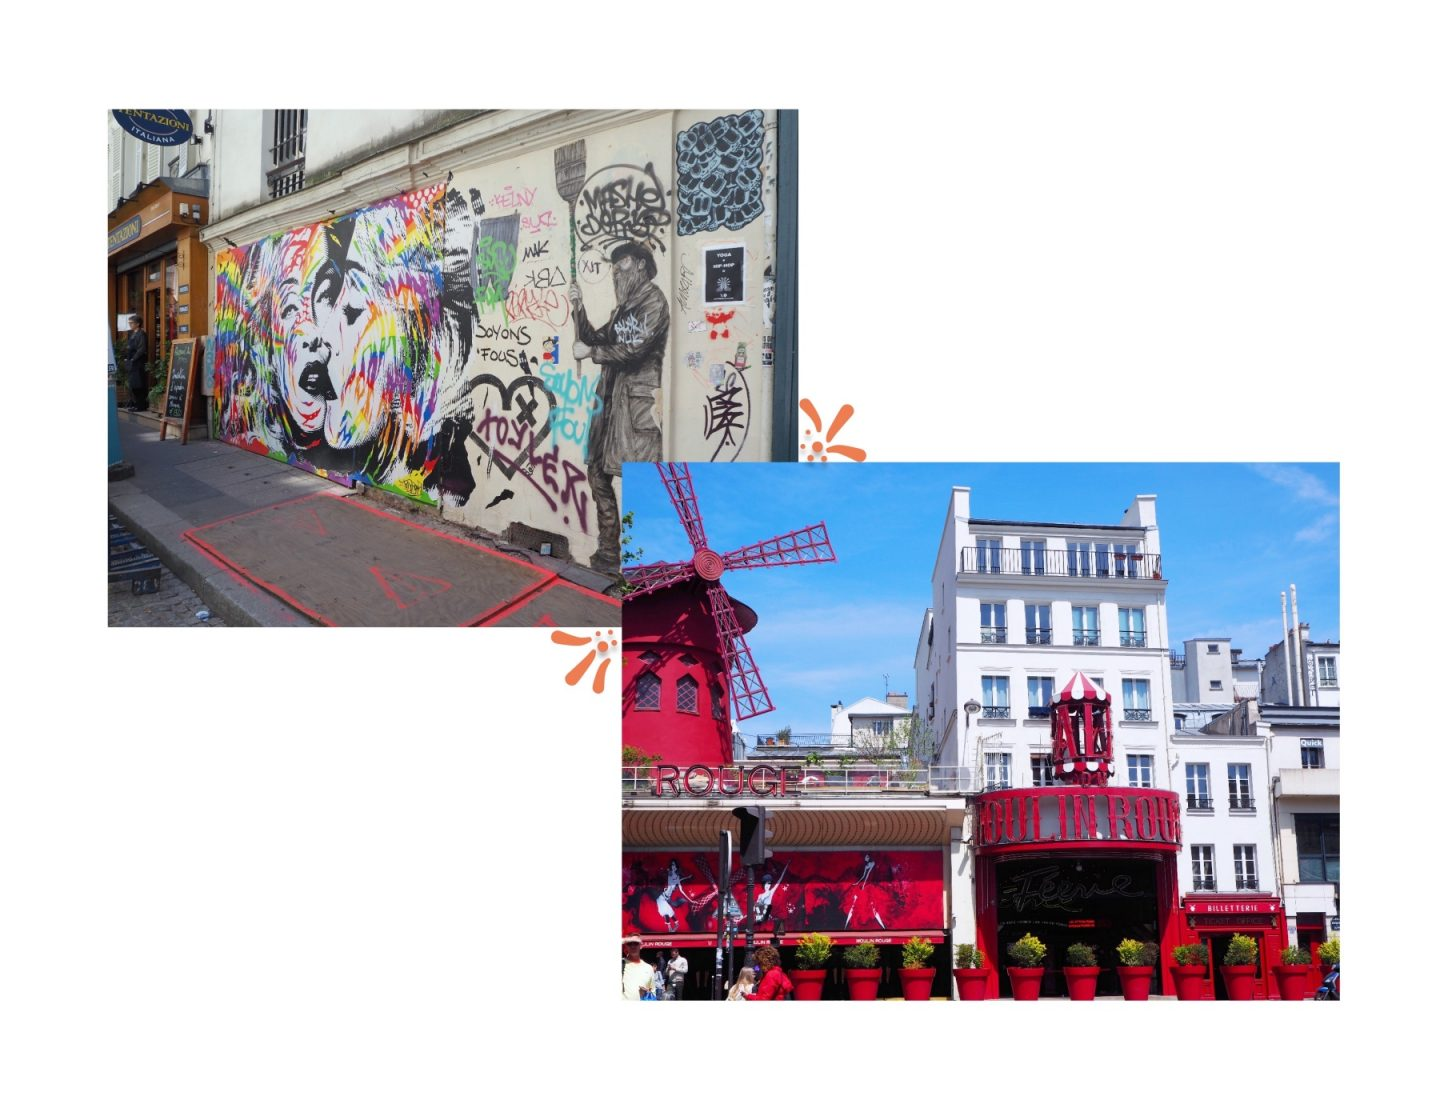 Exploring Paris; Montmartre & The Louvre - graffiti & mulin rouge collage